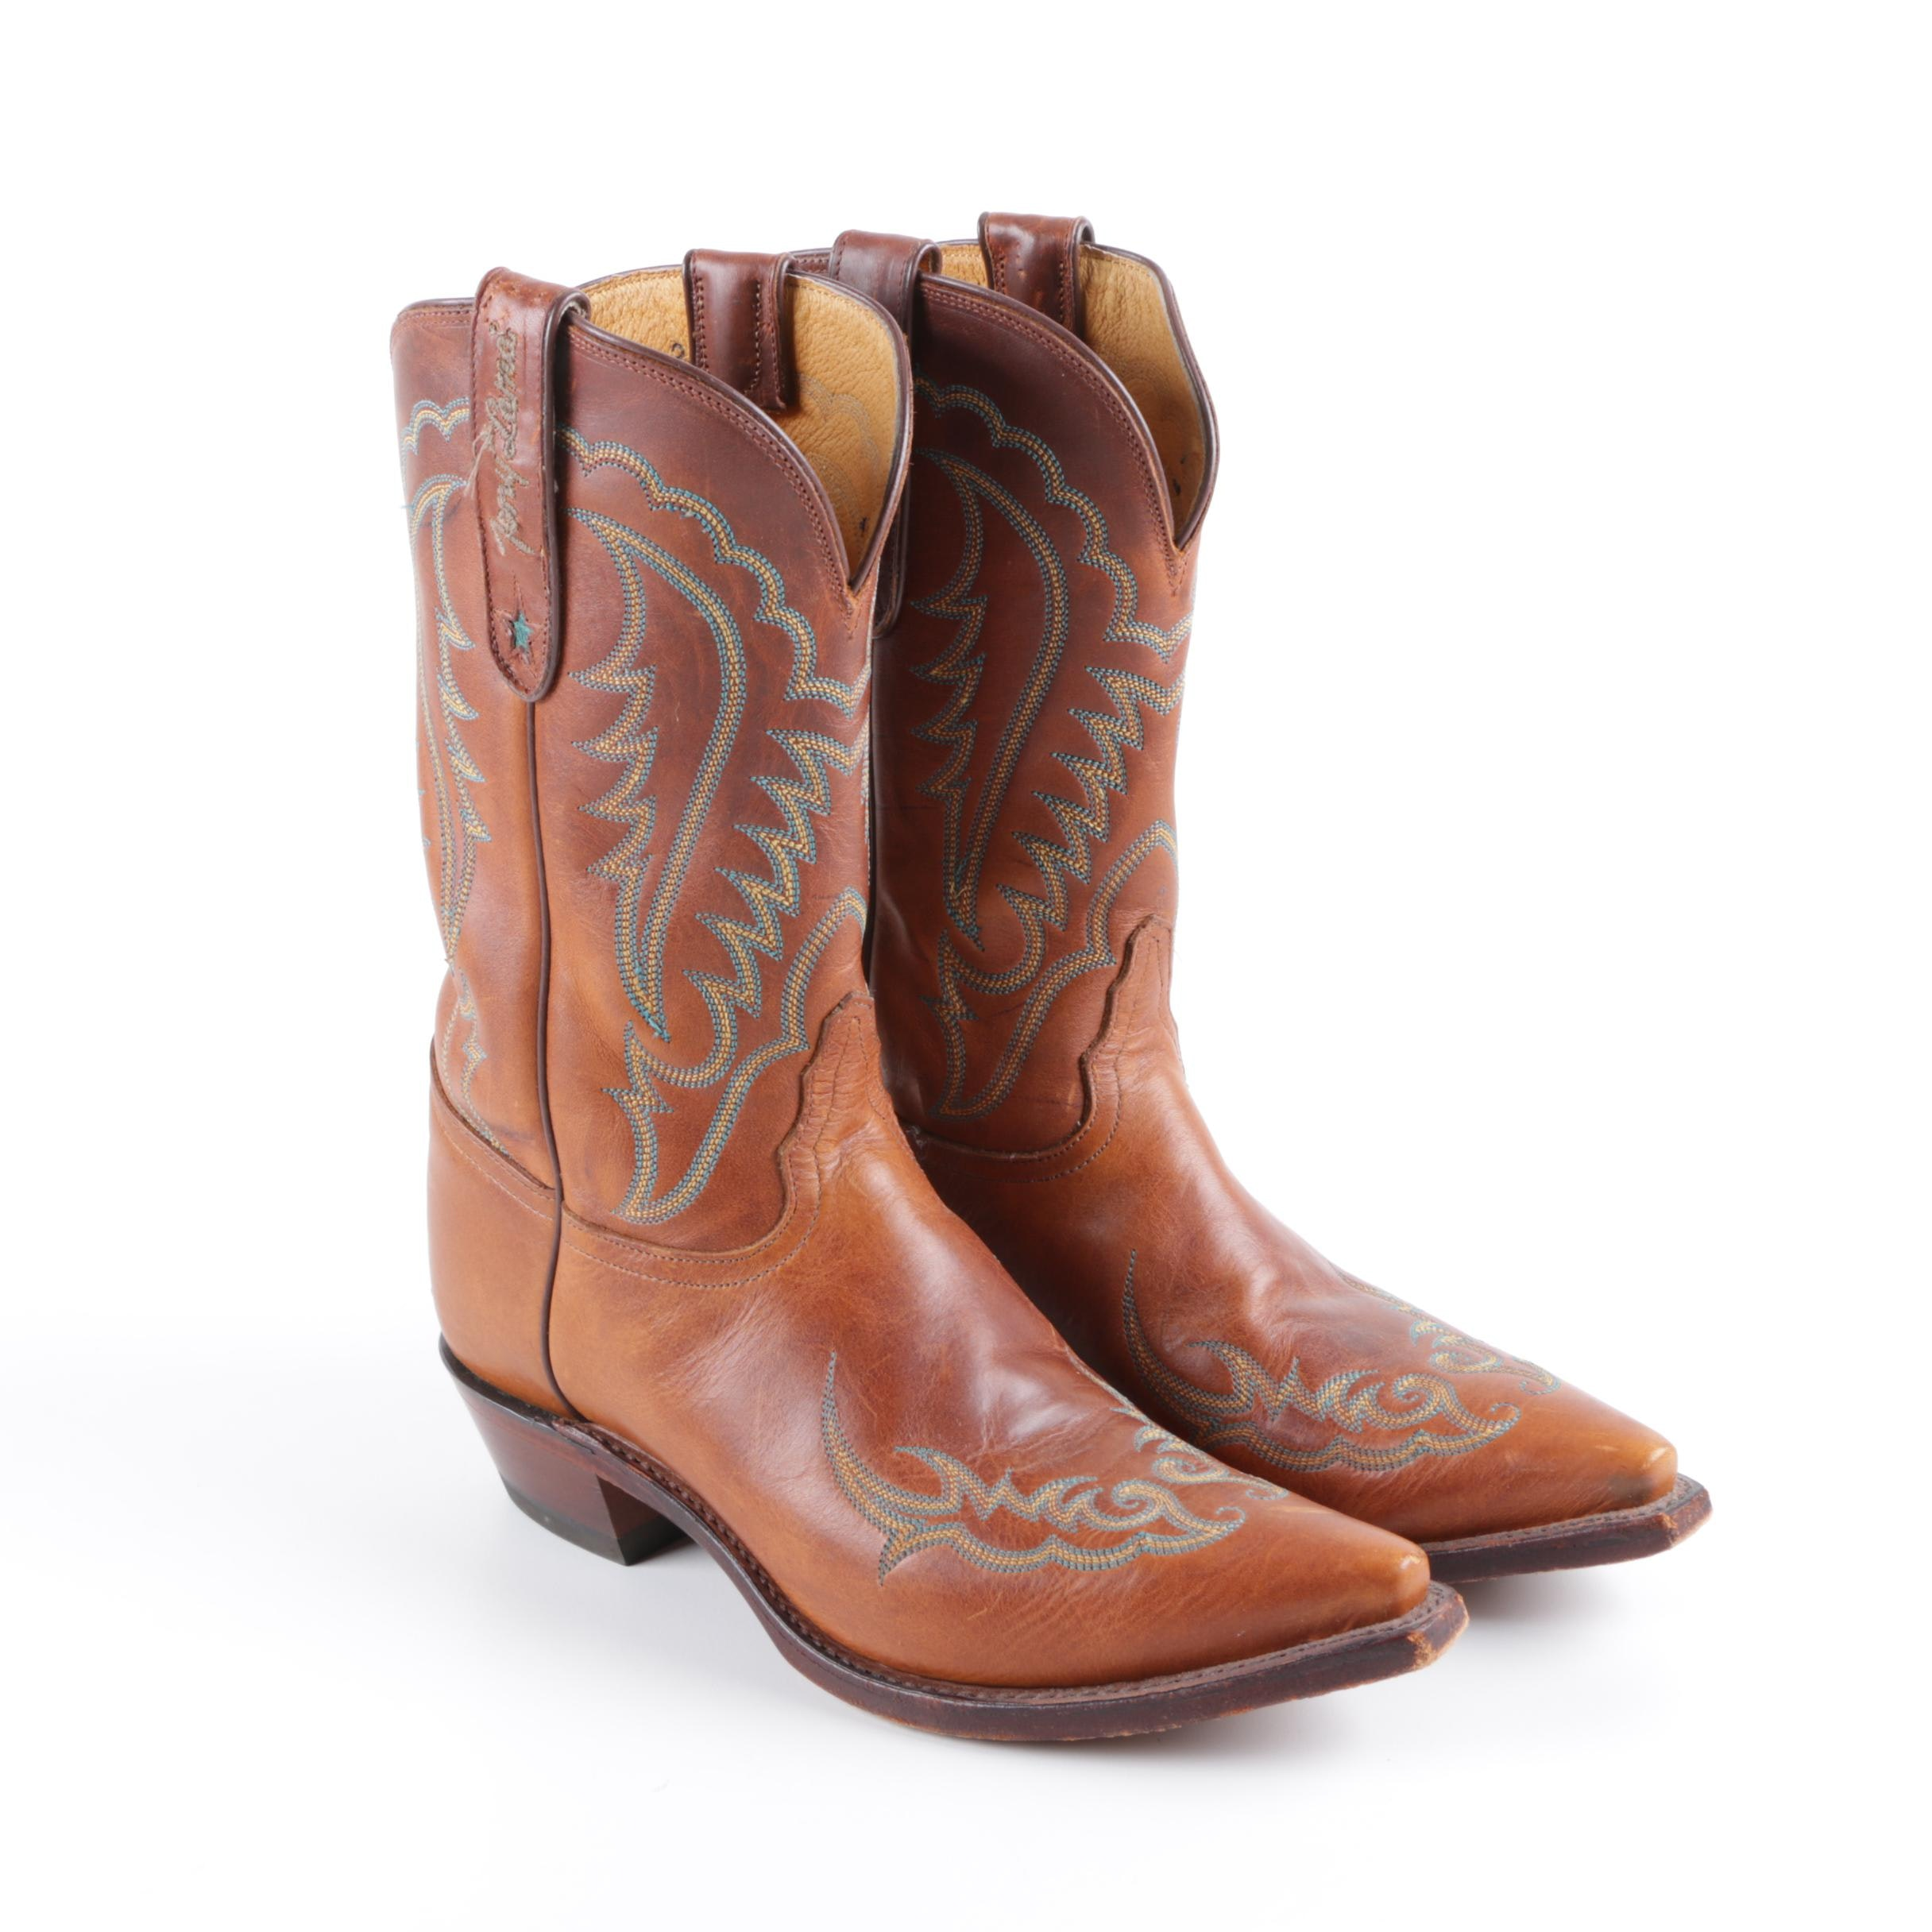 Women's Tony Lama Light Brown Leather Cowgirl Boots